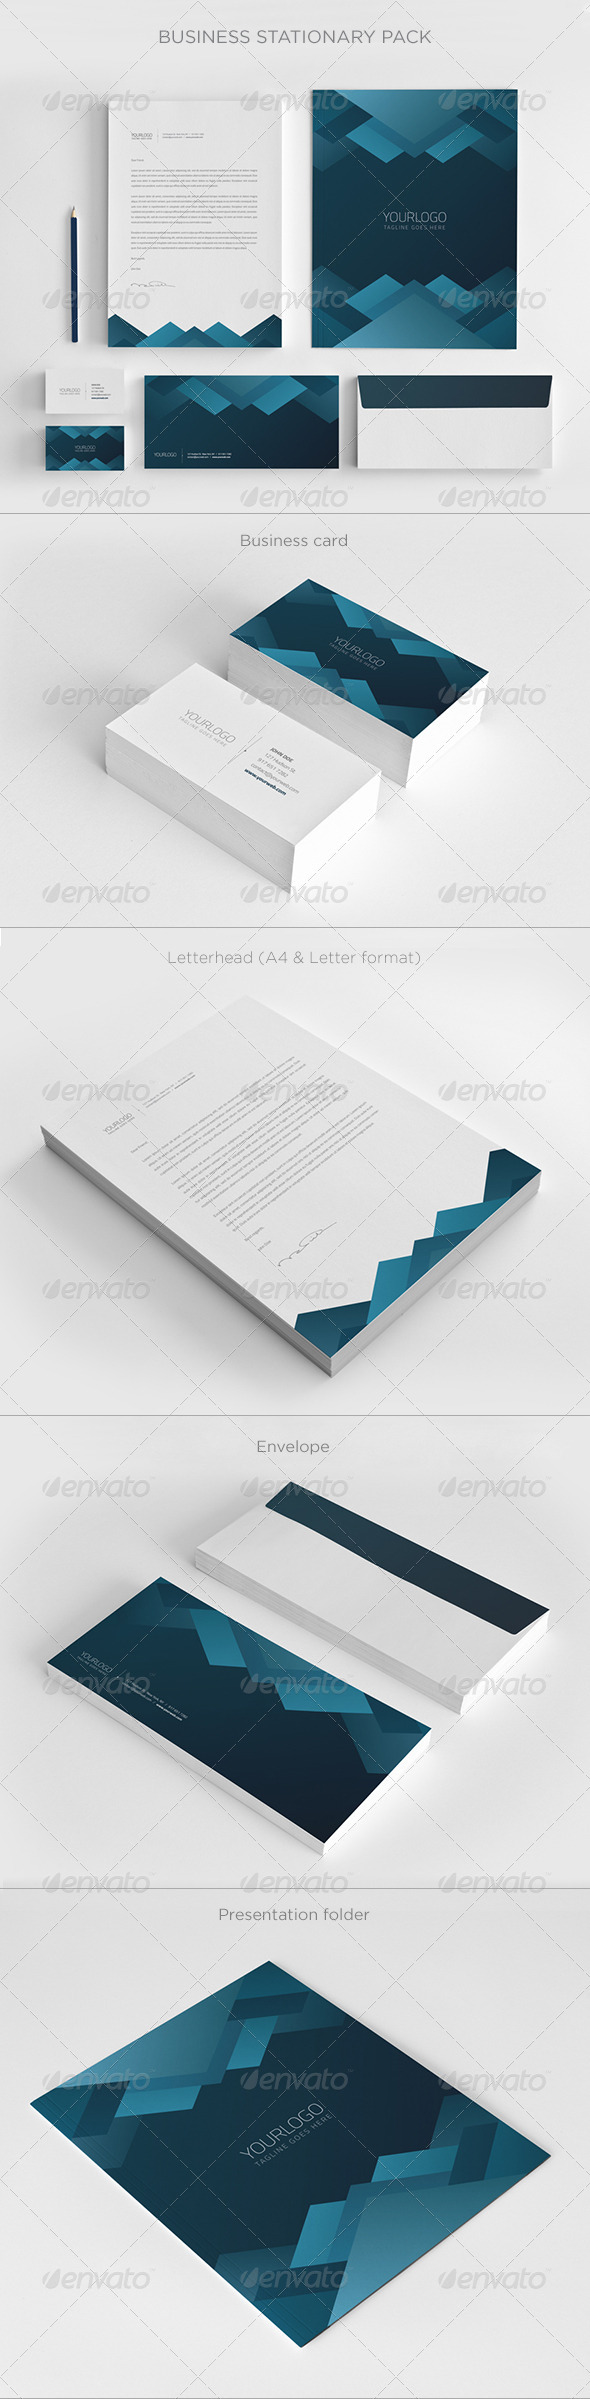 GraphicRiver Business Stationary Pack III 6495632